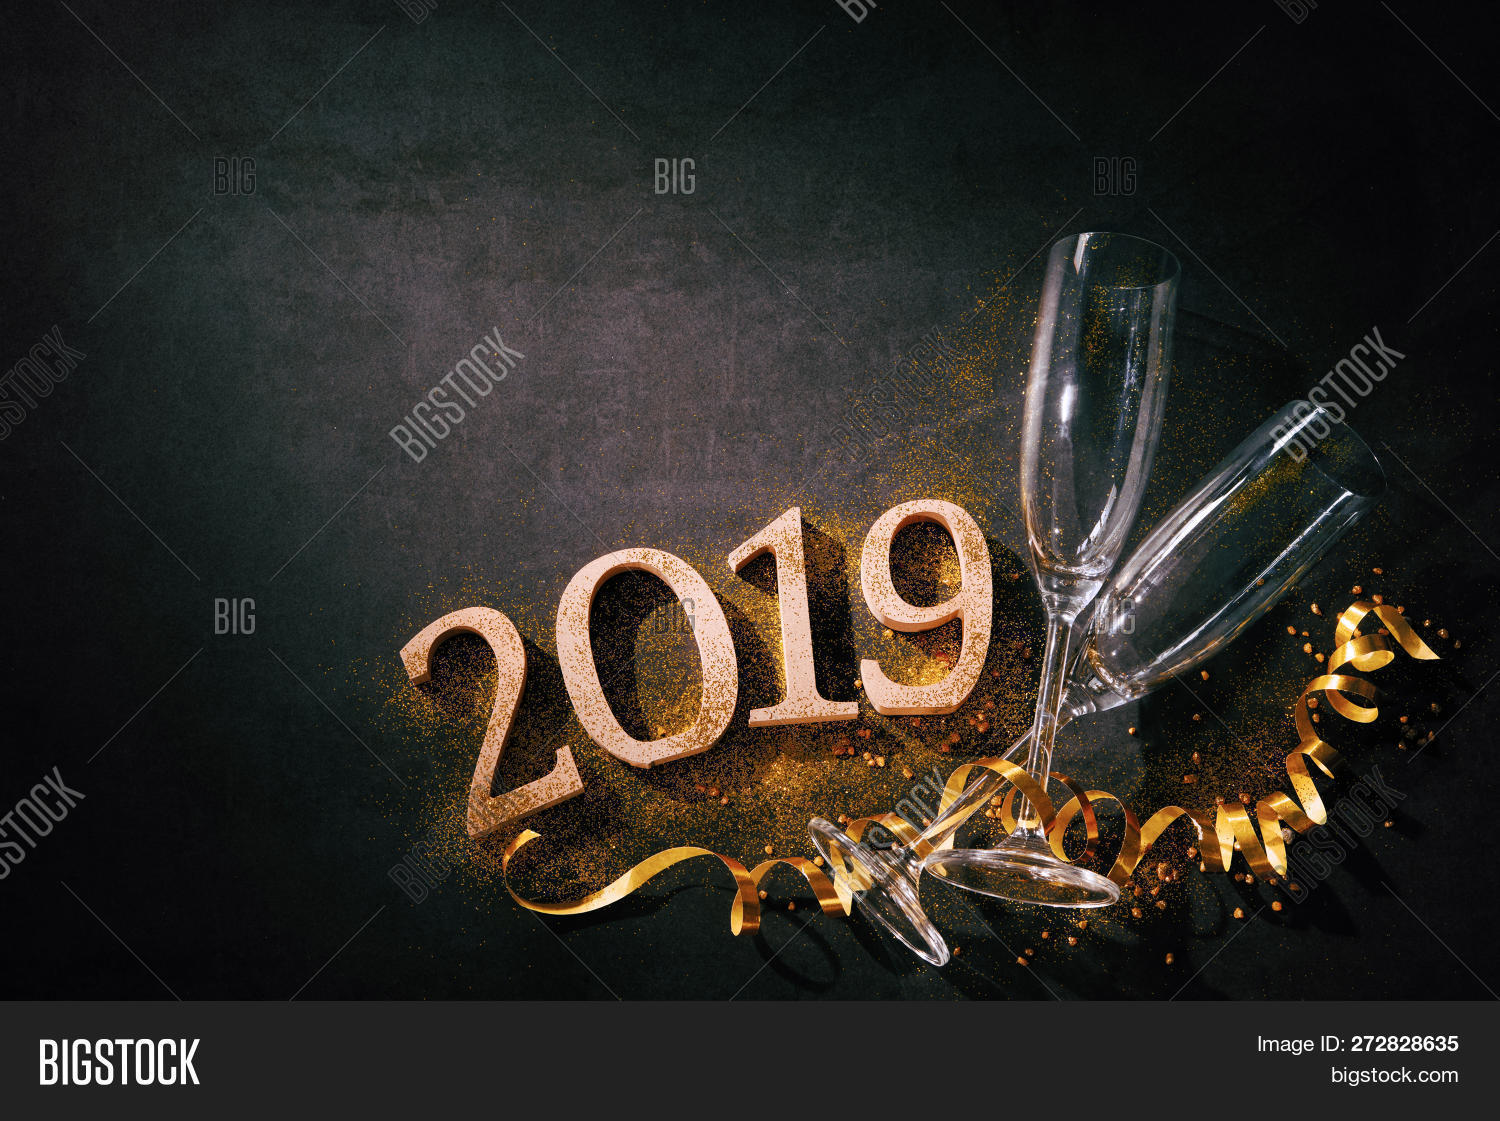 New Years Eve or Birthday celebration. Two champagne glasses with numbers 2019 and streamers on dark